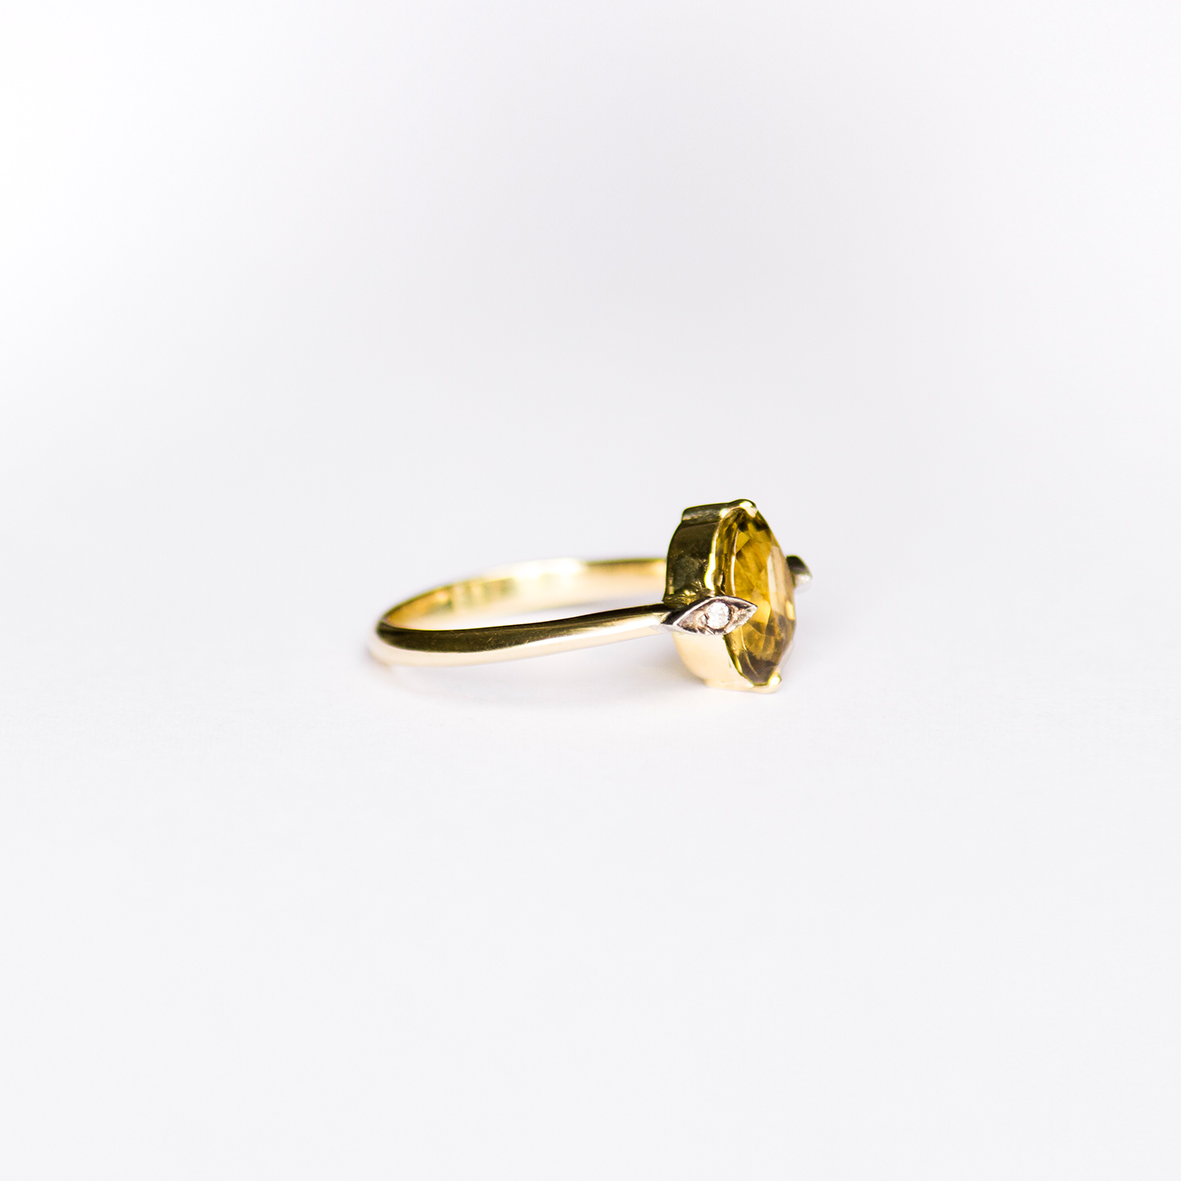 5. OONA_gems of ceylon_ficha2_sinhalite ring